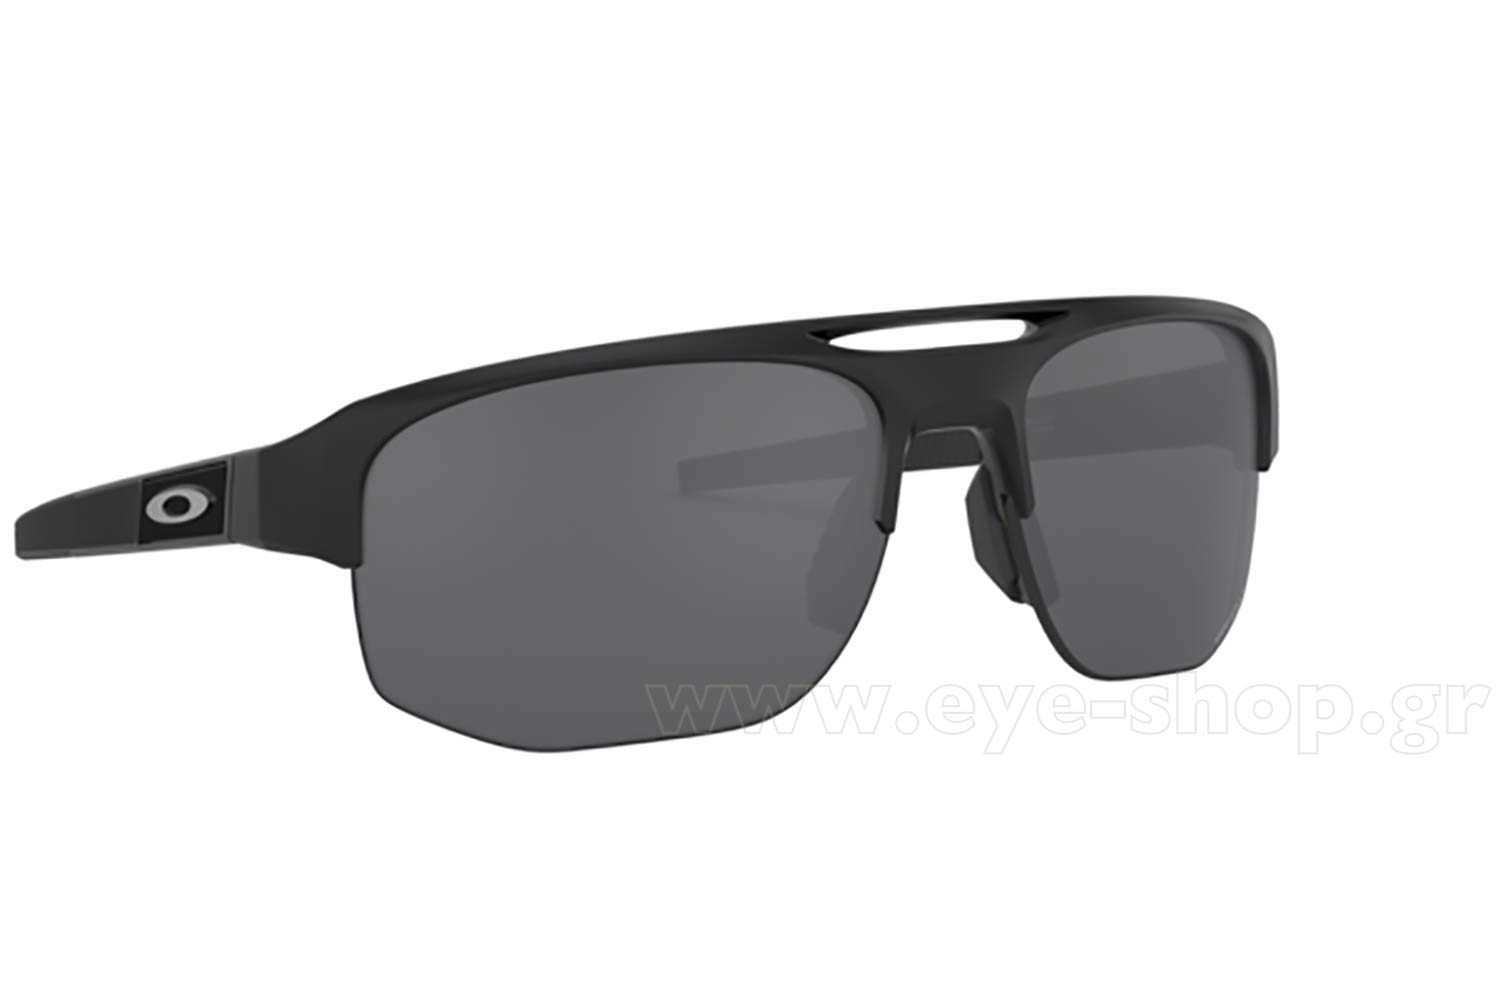 dfcfb02da3 SUNGLASSES Oakley MERCENARY 9424 08